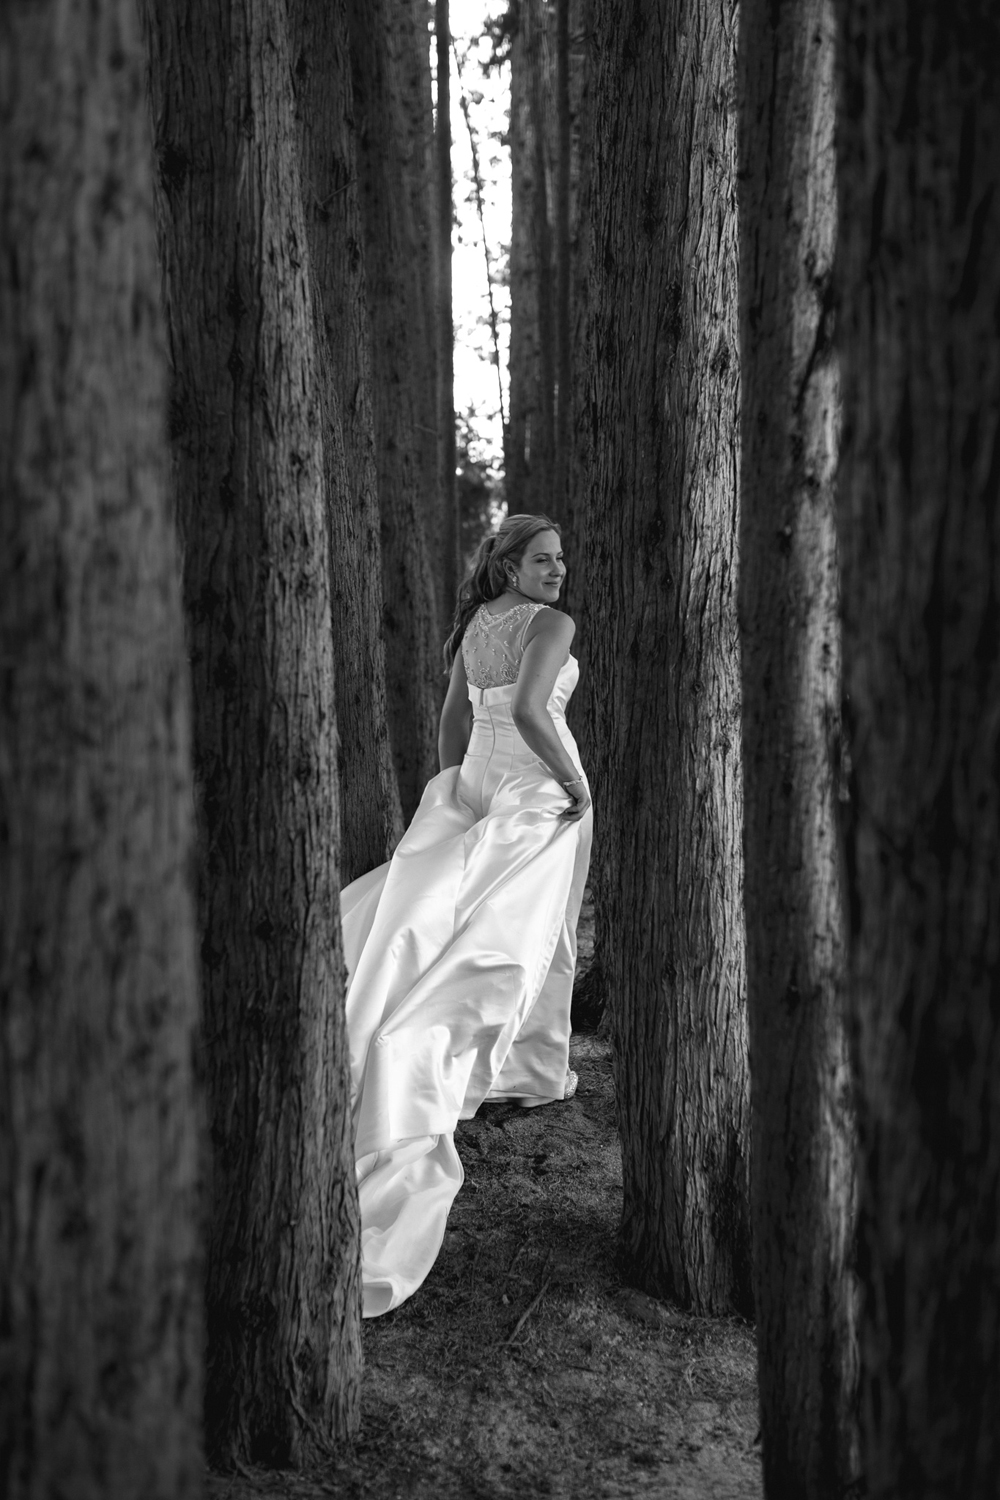 678-Byron-Bay-Wedding-Photographer-Carly-Tia-Photography.jpg